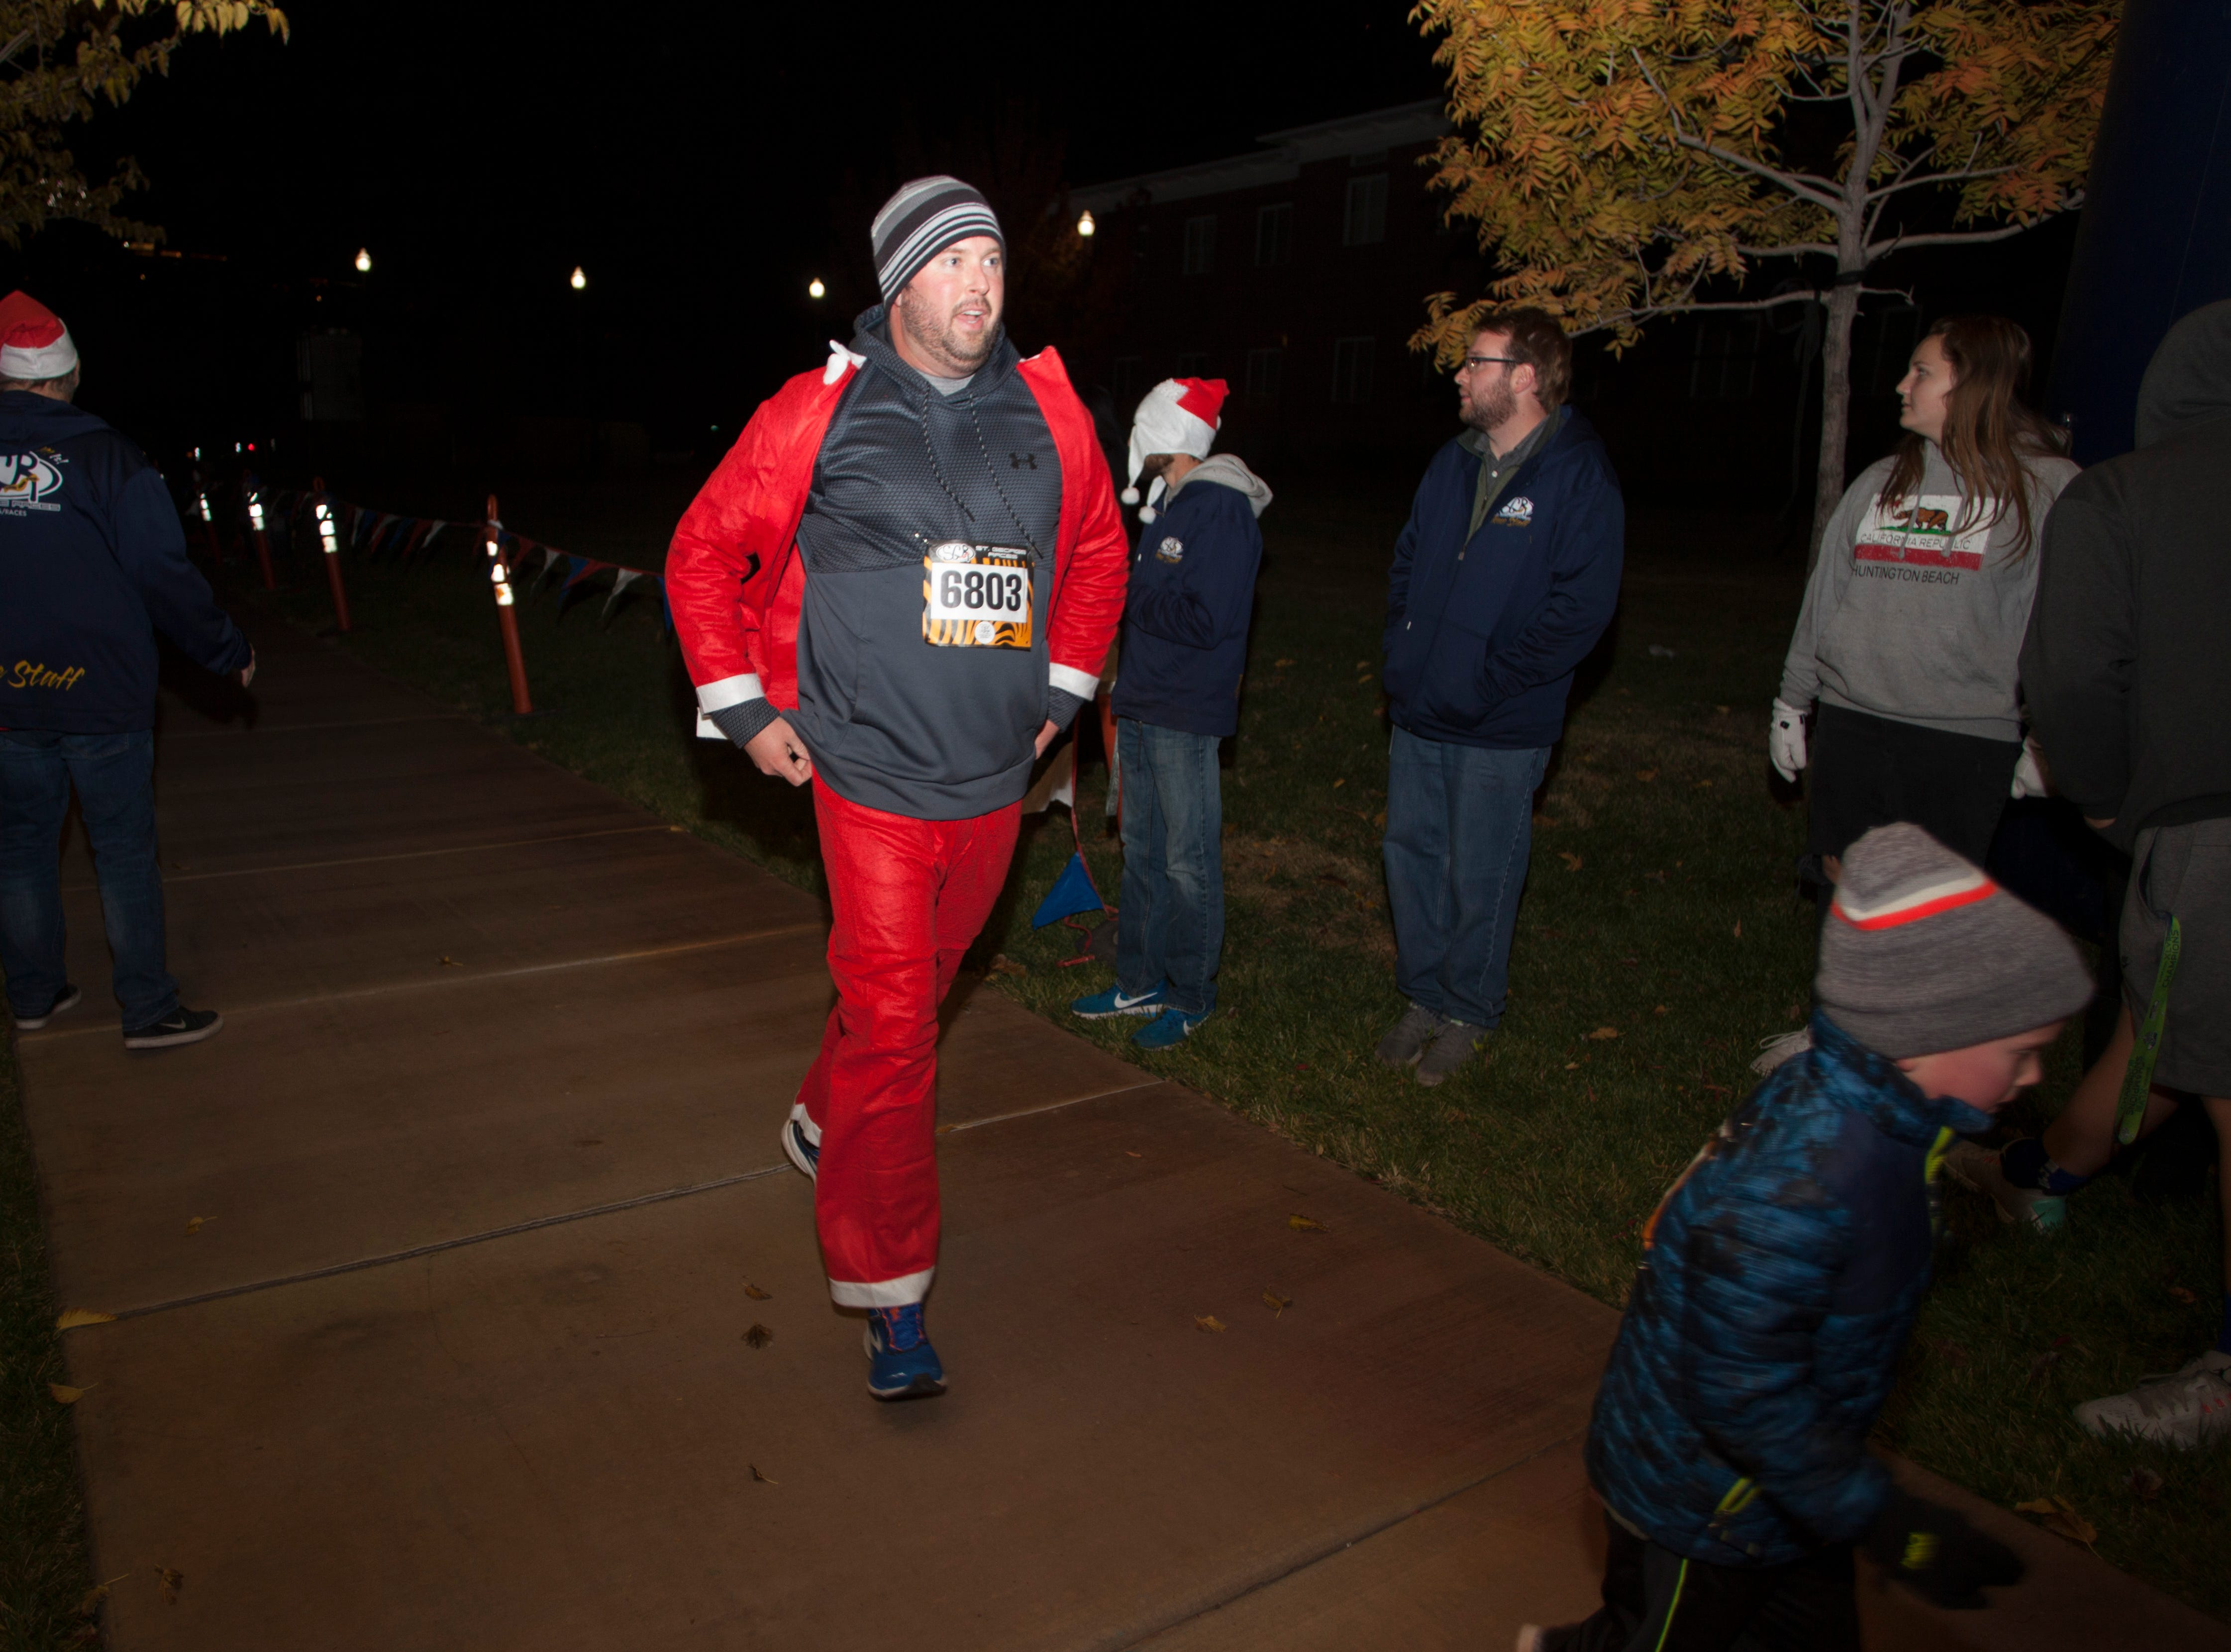 Community members gather at the town square to run the Santa Dash and commemorate the lighting of the Christmas lights Monday, Nov. 26, 2018.